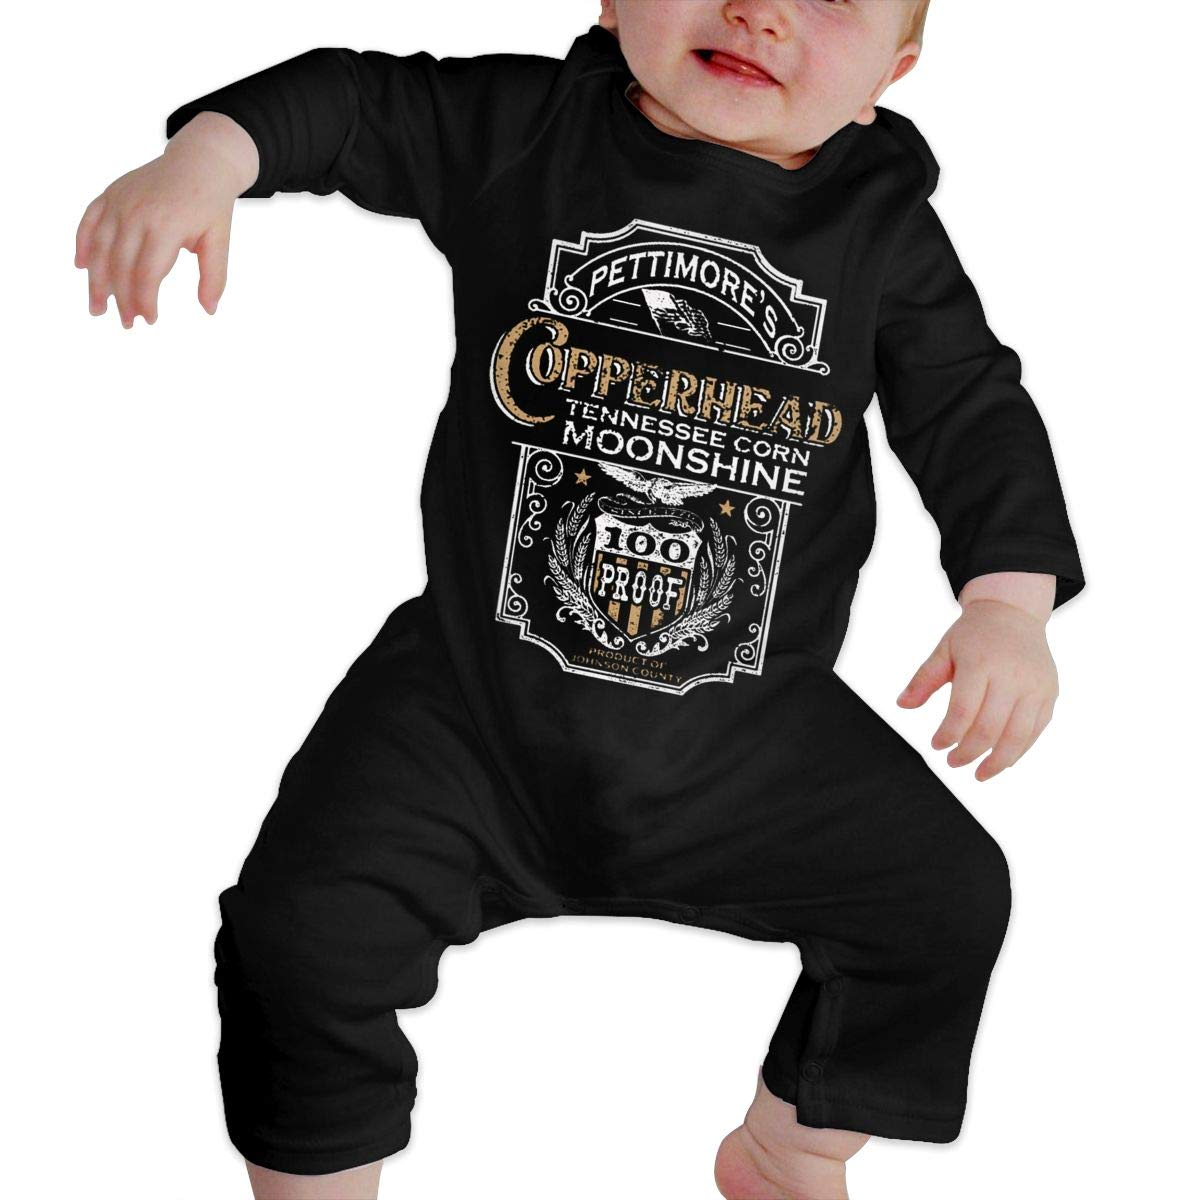 Kids Baby Long Sleeve Romper Steve Earle Inspired Copperhead Road Unisex Cotton Cute Jumpsuit Baby Crawler Clothes